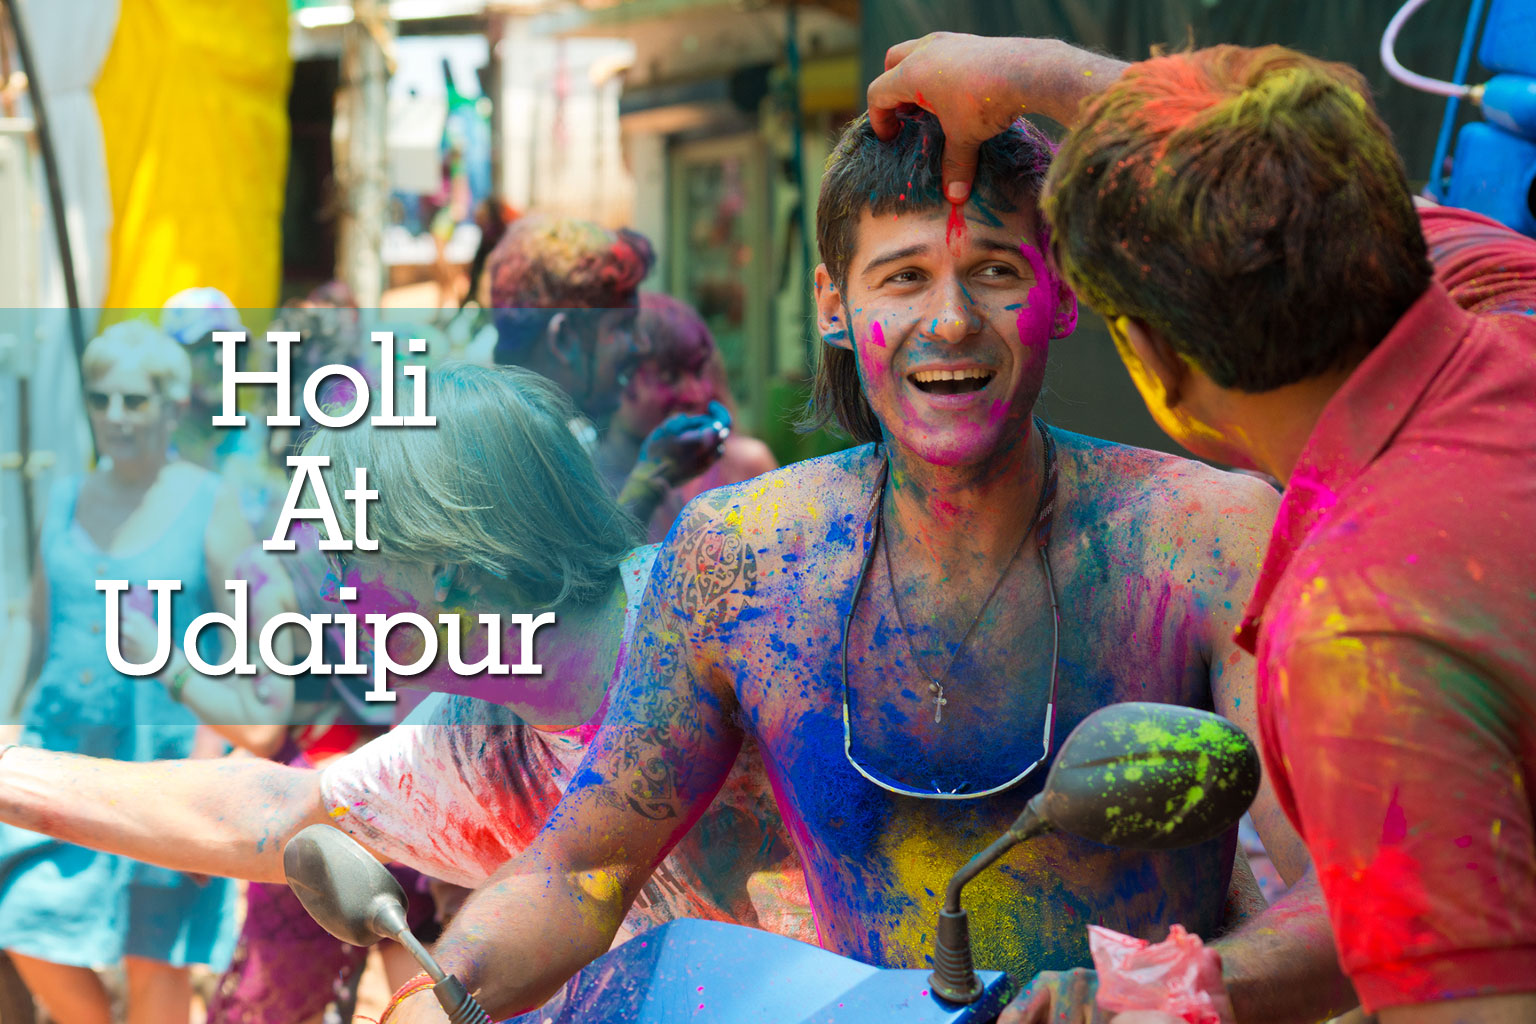 Grand Holi at Udaipur